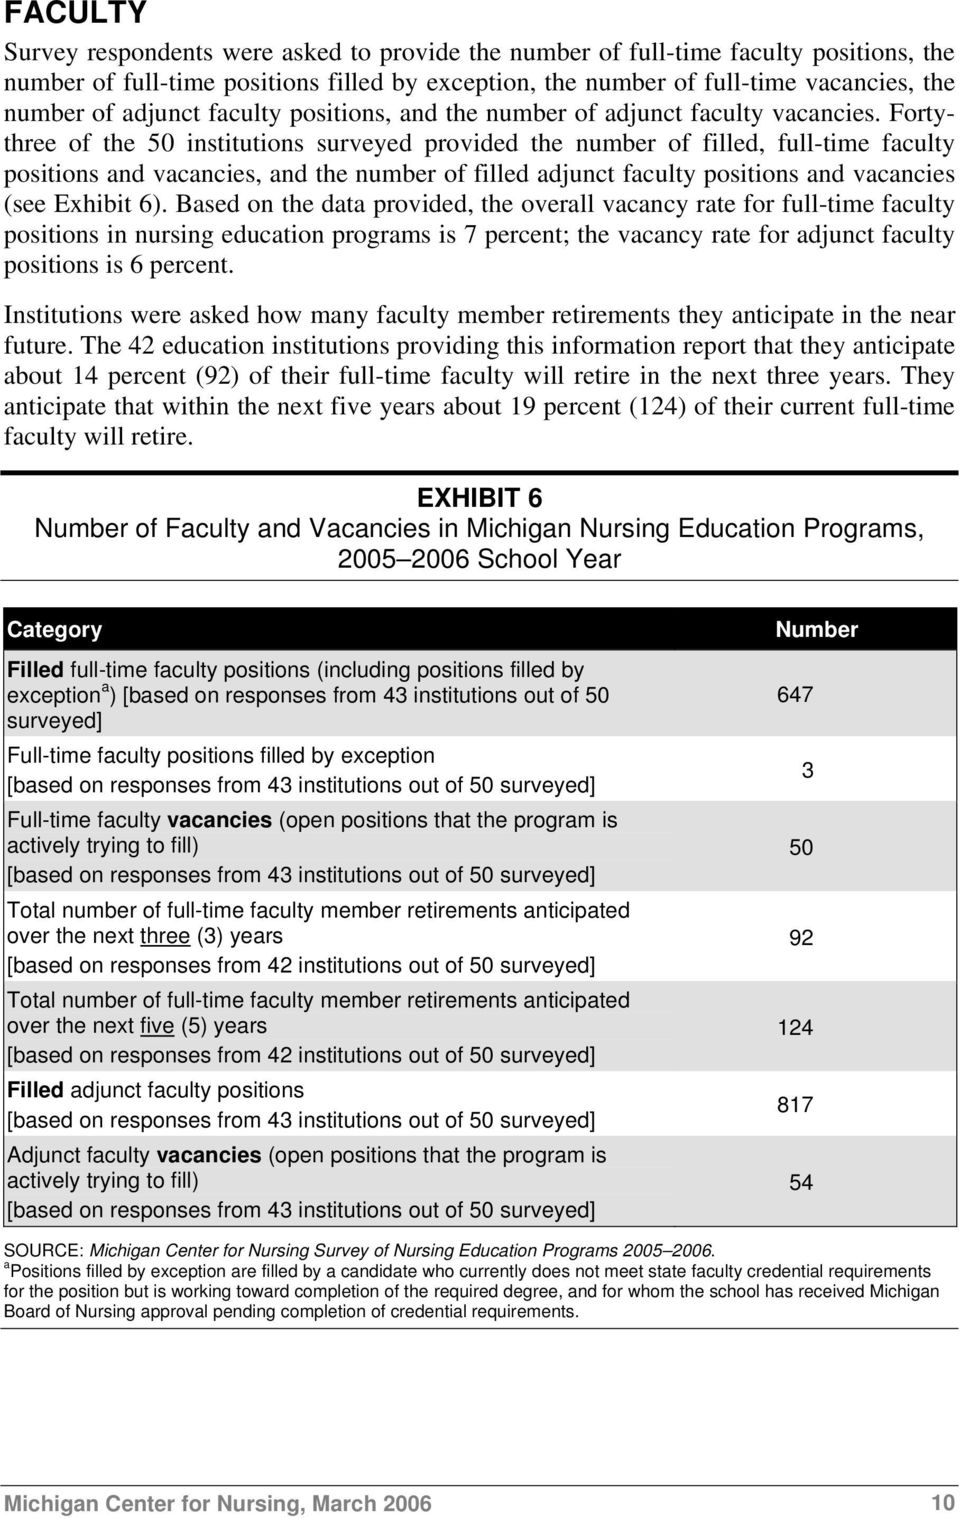 Fortythree of the 50 institutions surveyed provided the number of filled, full-time faculty positions and vacancies, and the number of filled adjunct faculty positions and vacancies (see Exhibit 6).